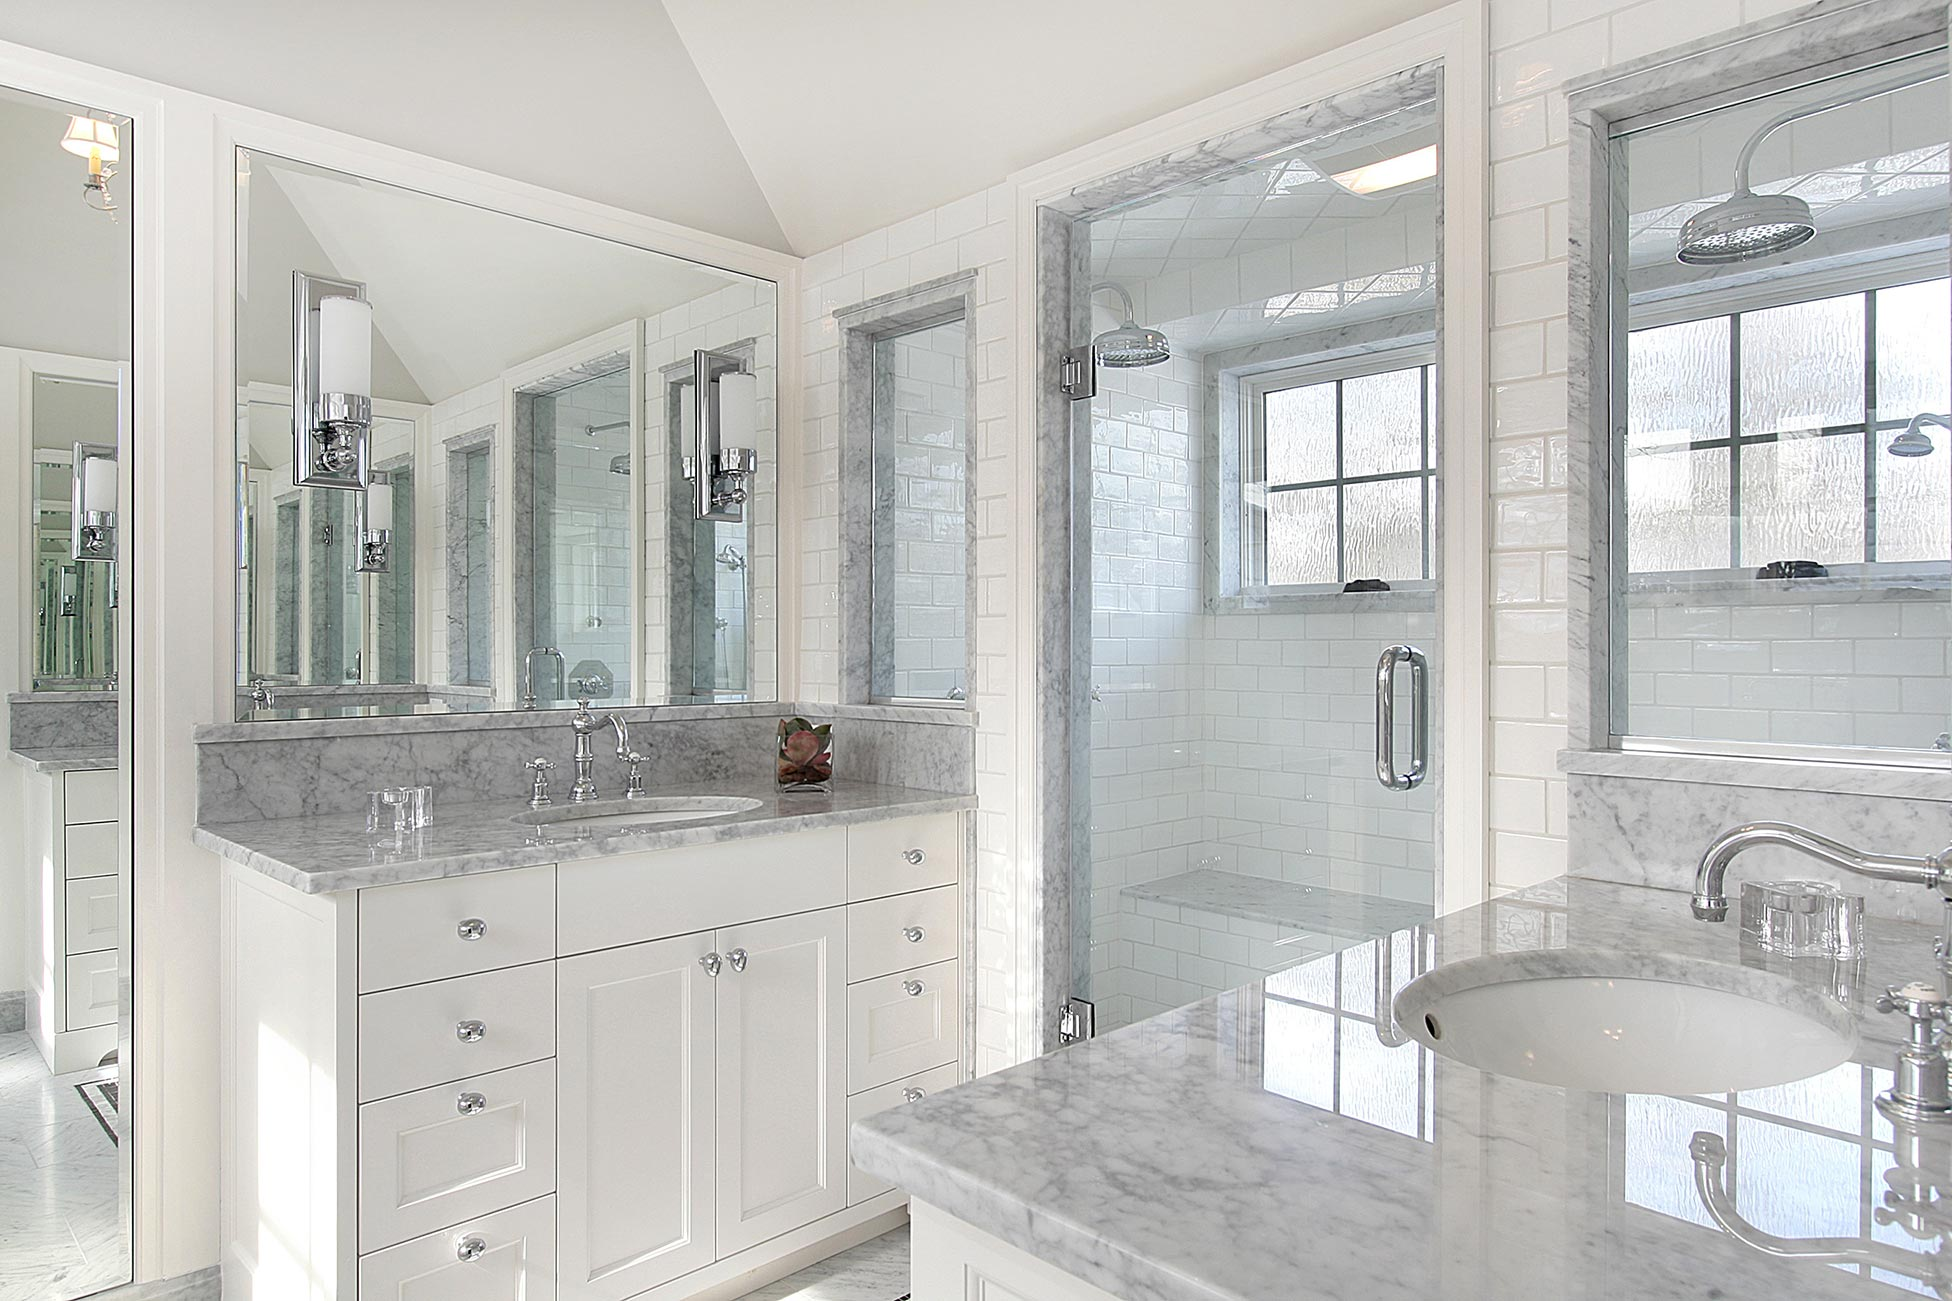 Southbrook Cabinetry | Bathroom Cabinetry for the Discerning